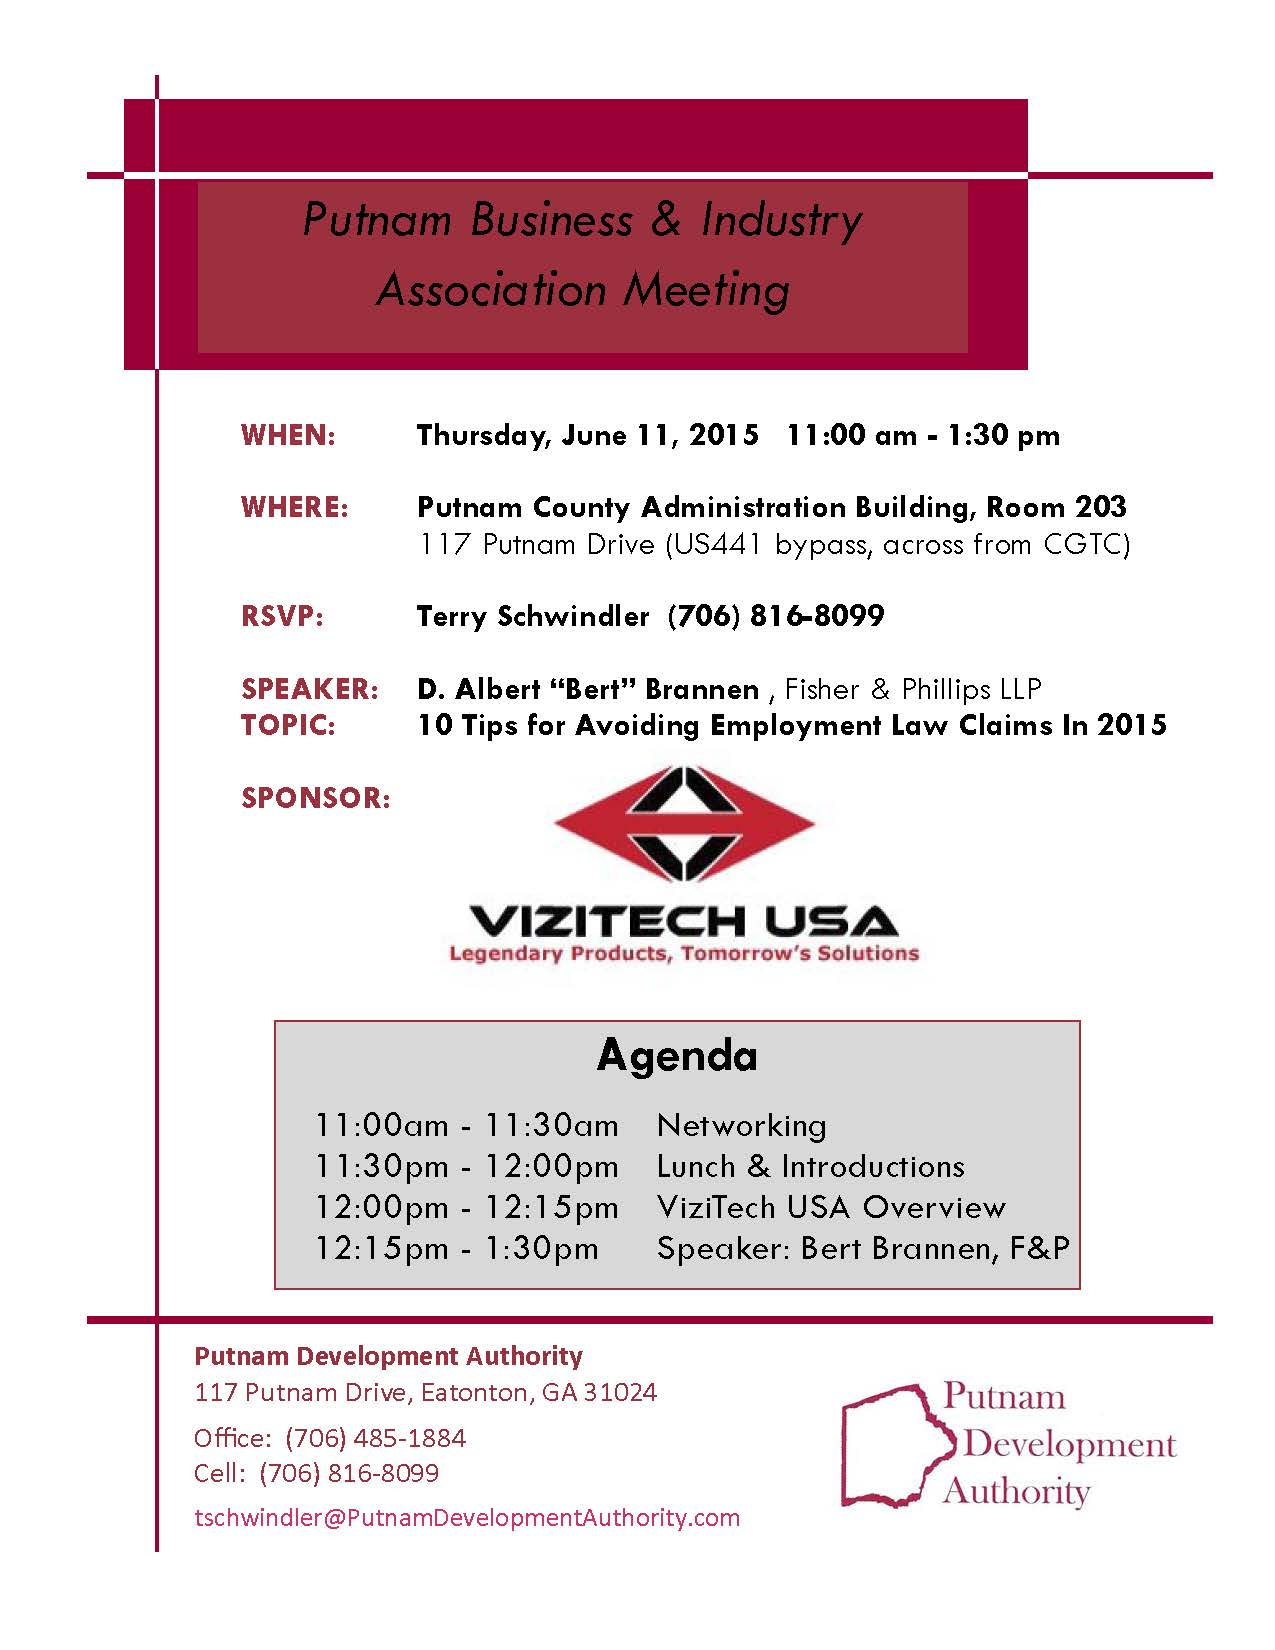 Business & Industry Association Meeting Flyer 6-11-15_Page_1